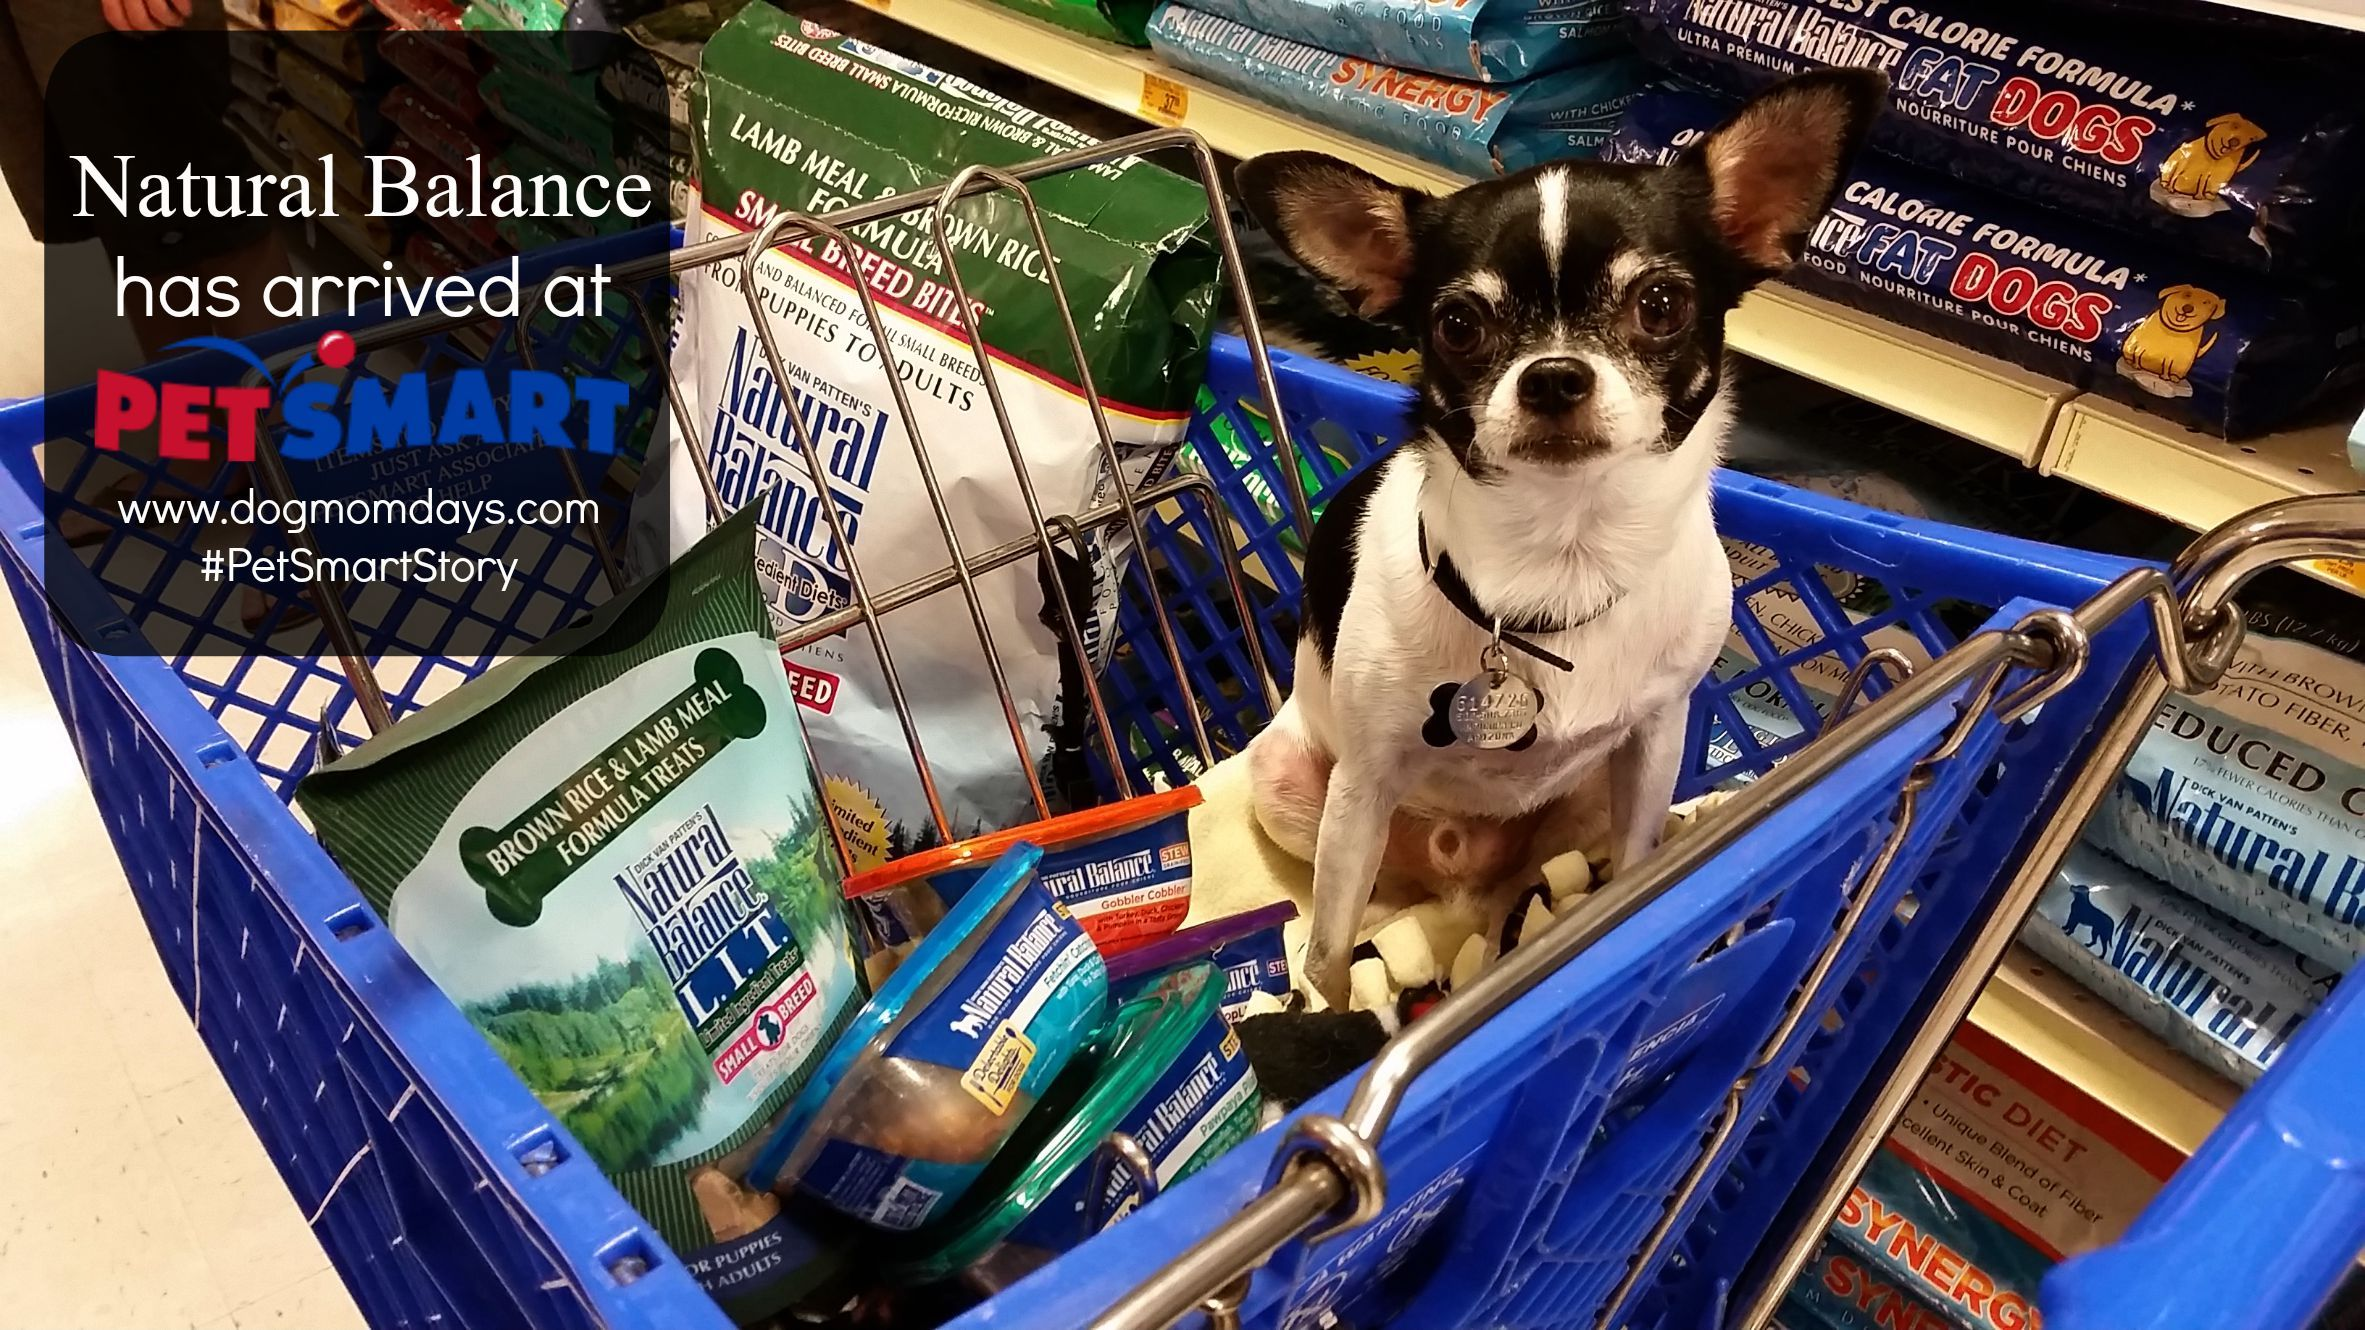 It S Reason To Celebrate Natural Balance Has Arrived At Petsmart